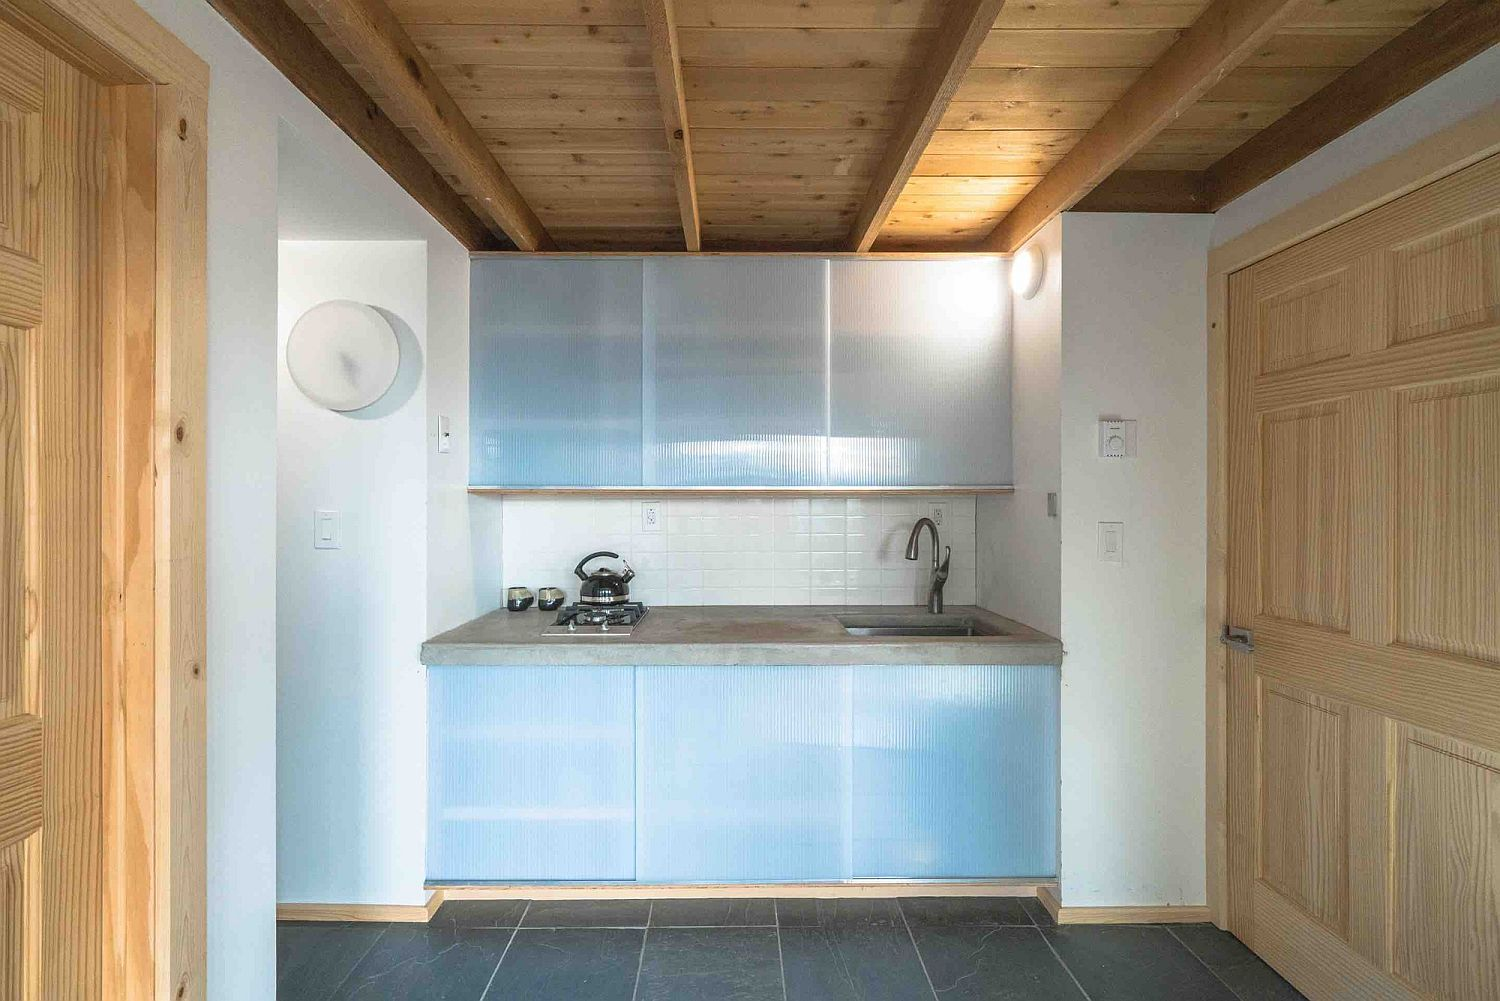 Small and minimal kitchen with frosted glass doors for cabinets